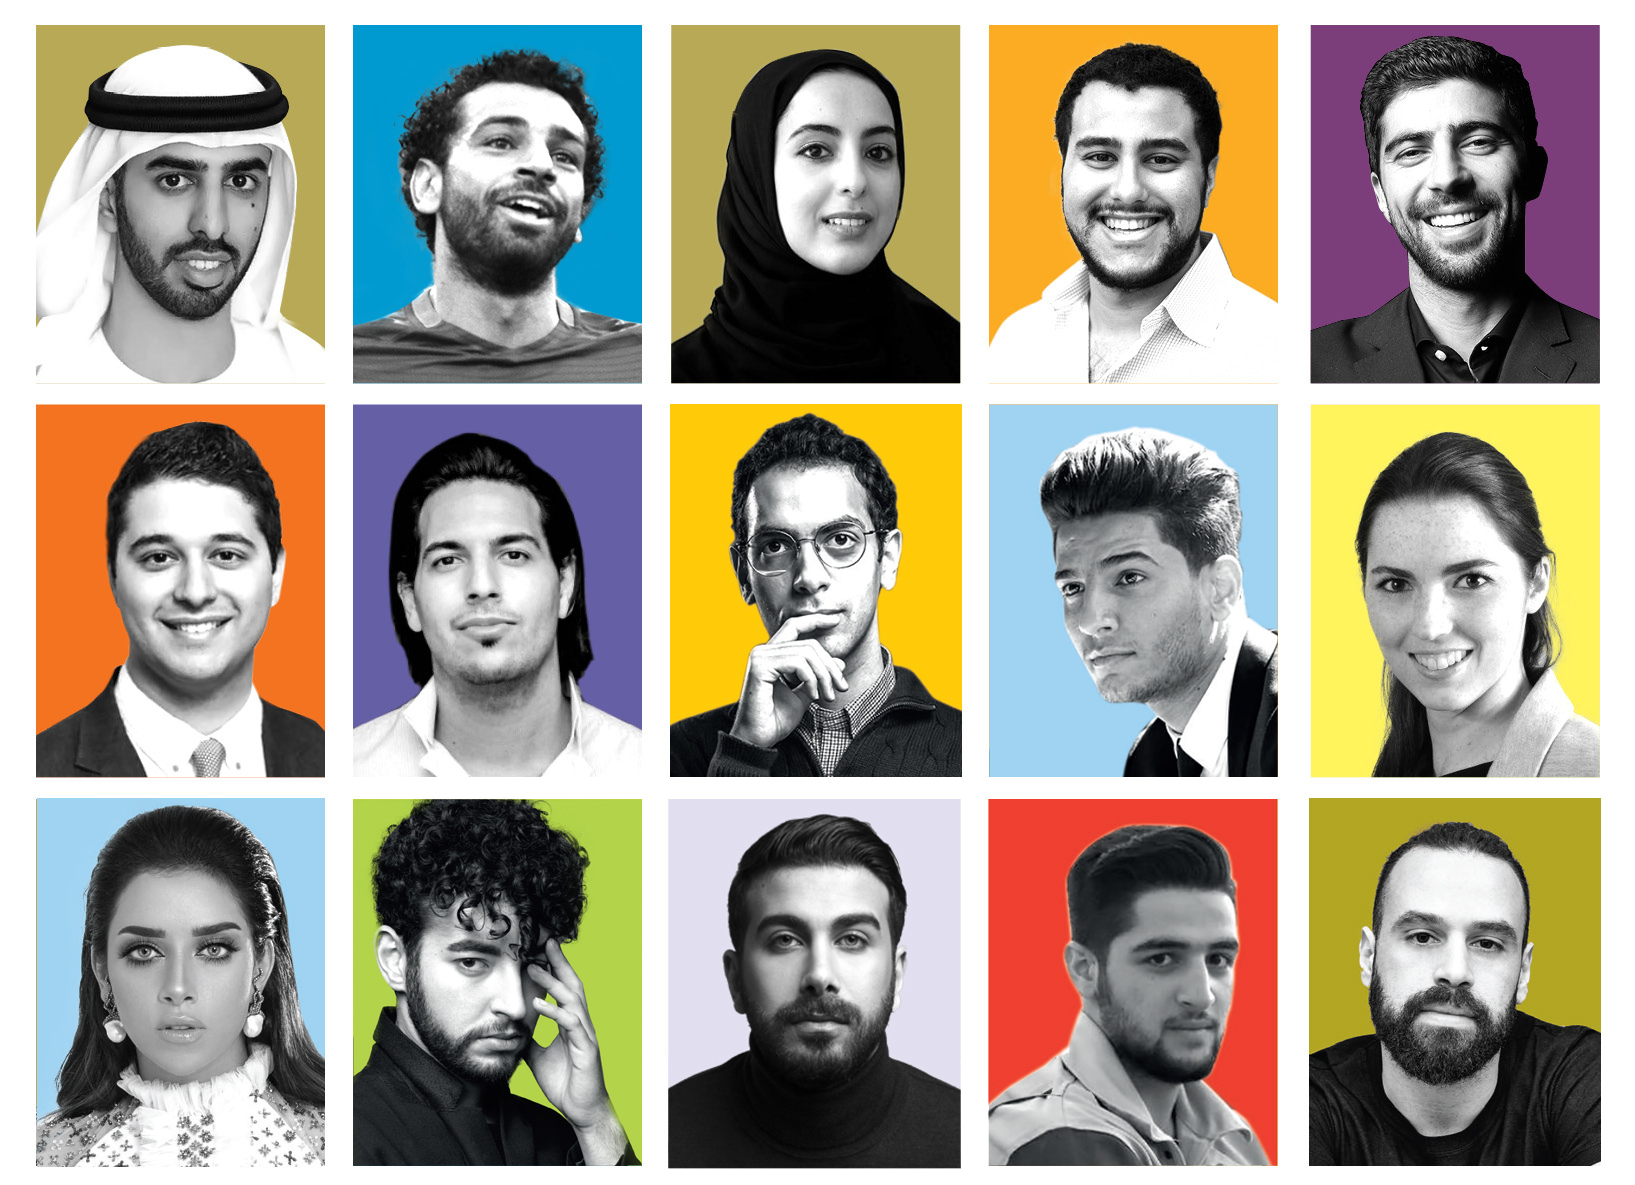 8 Egyptians named in Forbes' Arab 30 Under 30 list - Egypt